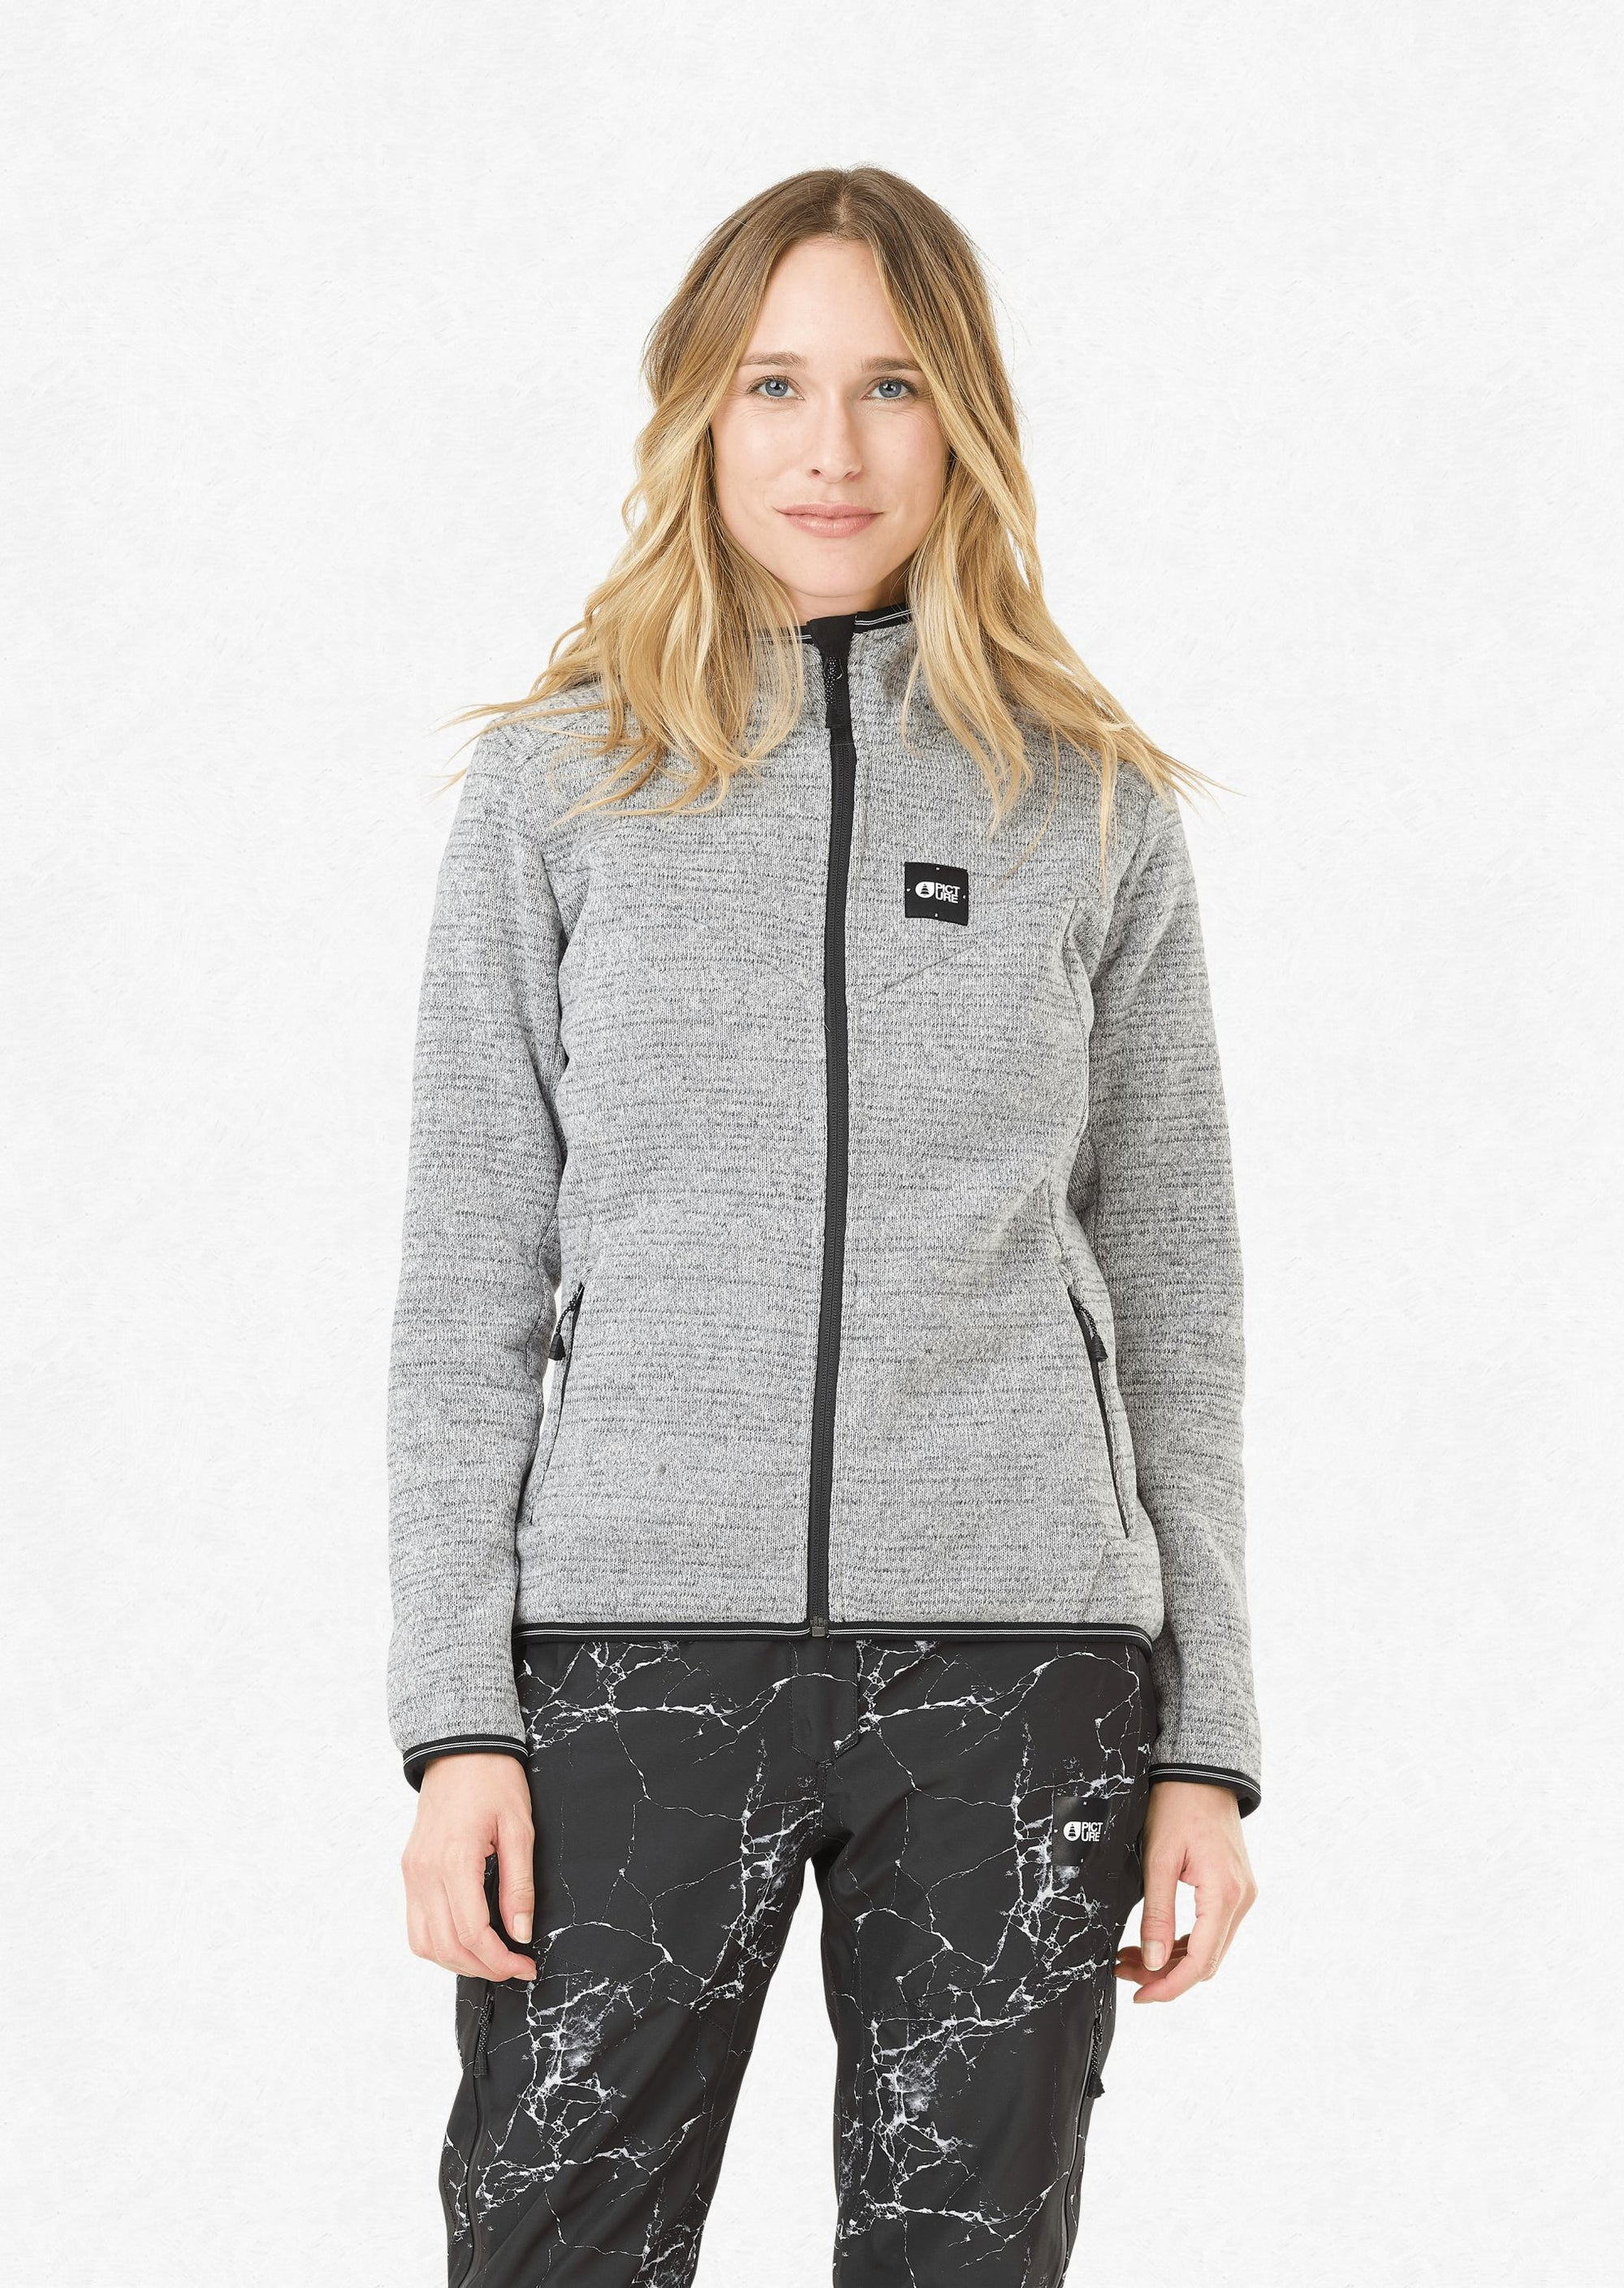 Picture Organic - W's Moder Jacket - Recycled Polyester - Weekendbee - sustainable sportswear